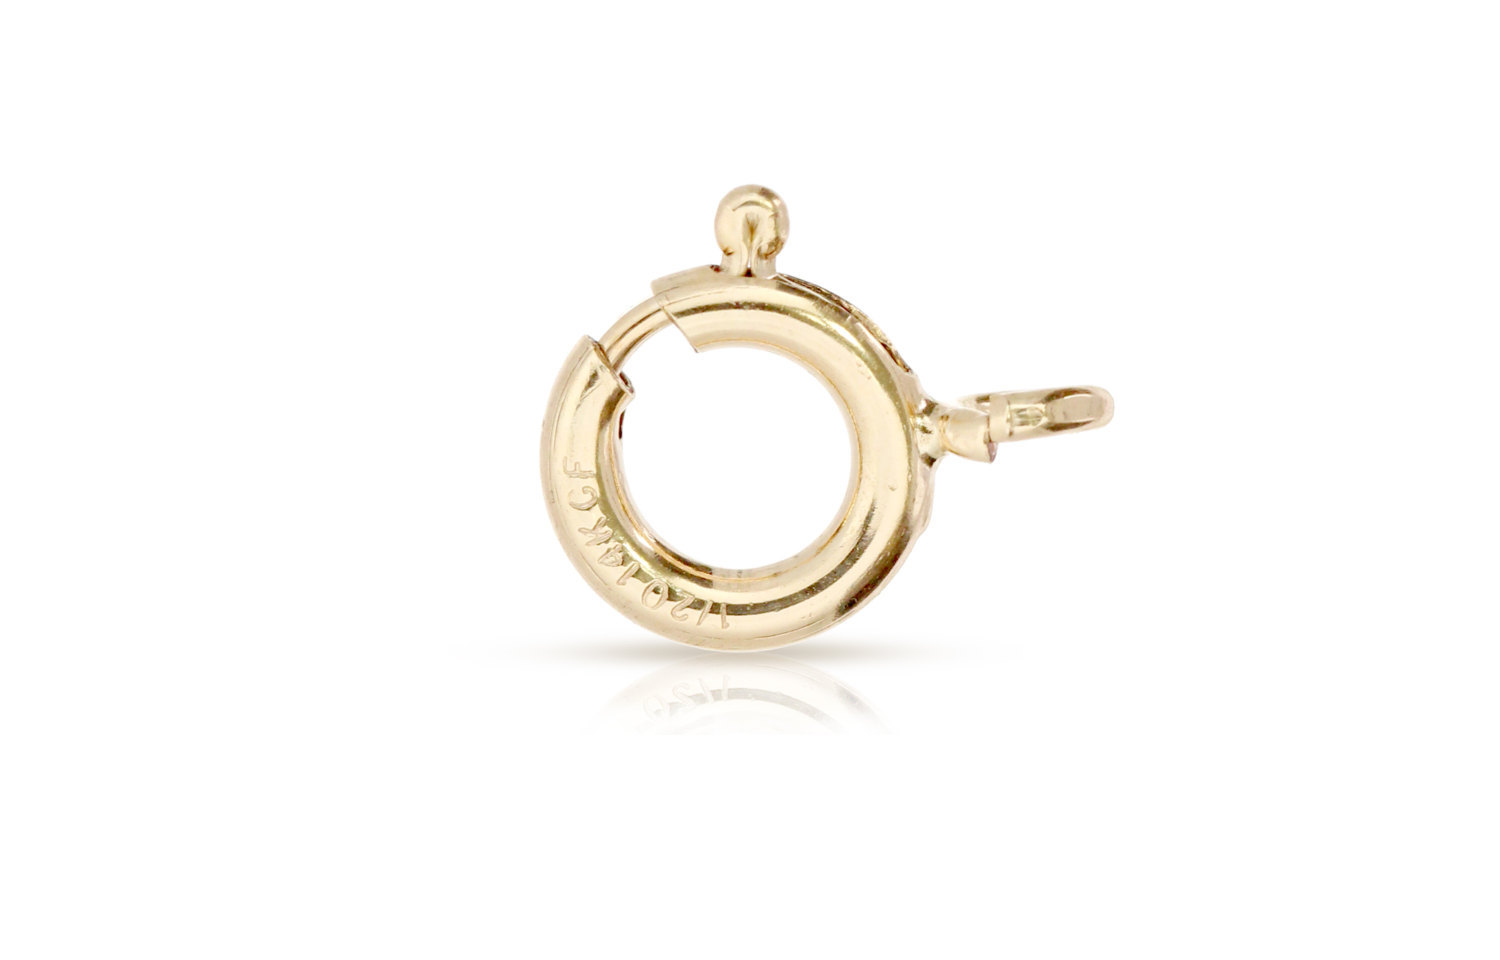 Primary image for Clasps, Spring Ring With Fixed Open Ring, 14Kt Gold Filled, 6mm, 20pcs (2665)/1